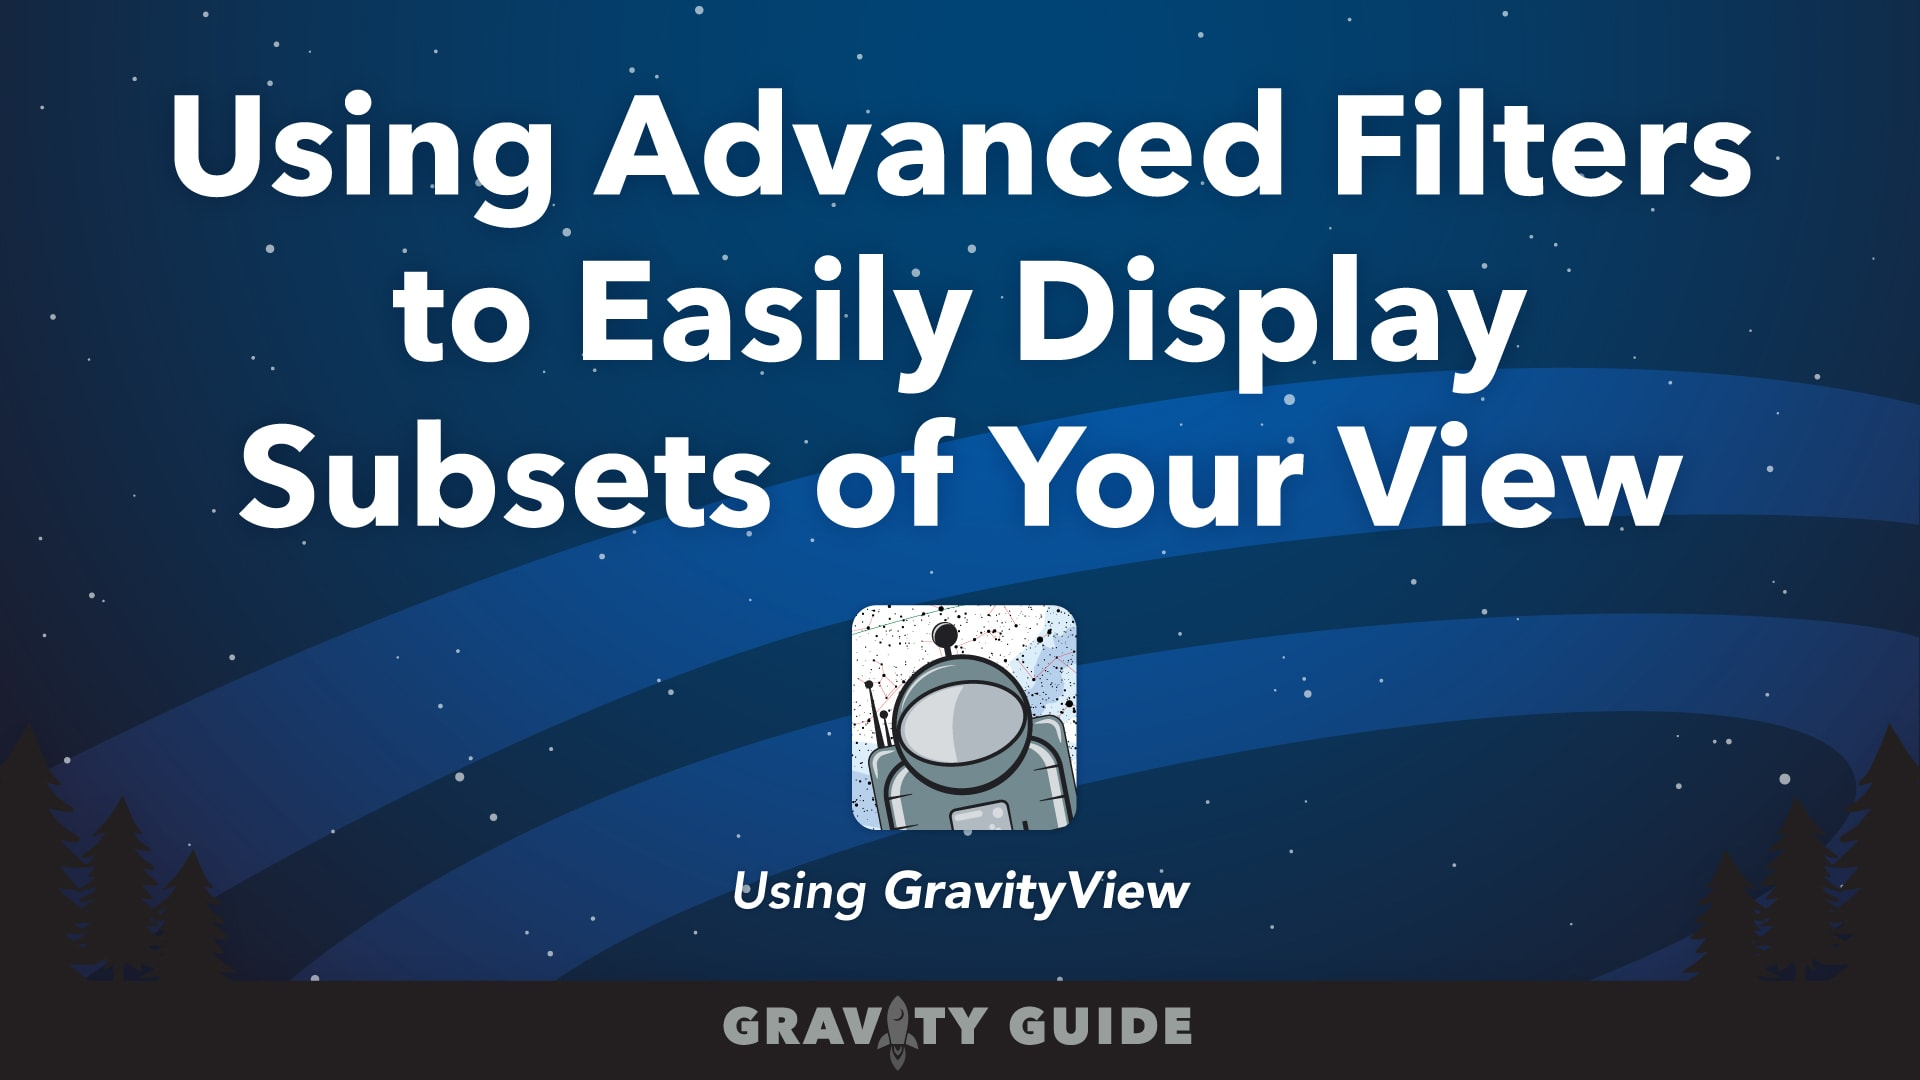 Using GravityView Advanced Filters to Easily Display Subsets of Your View